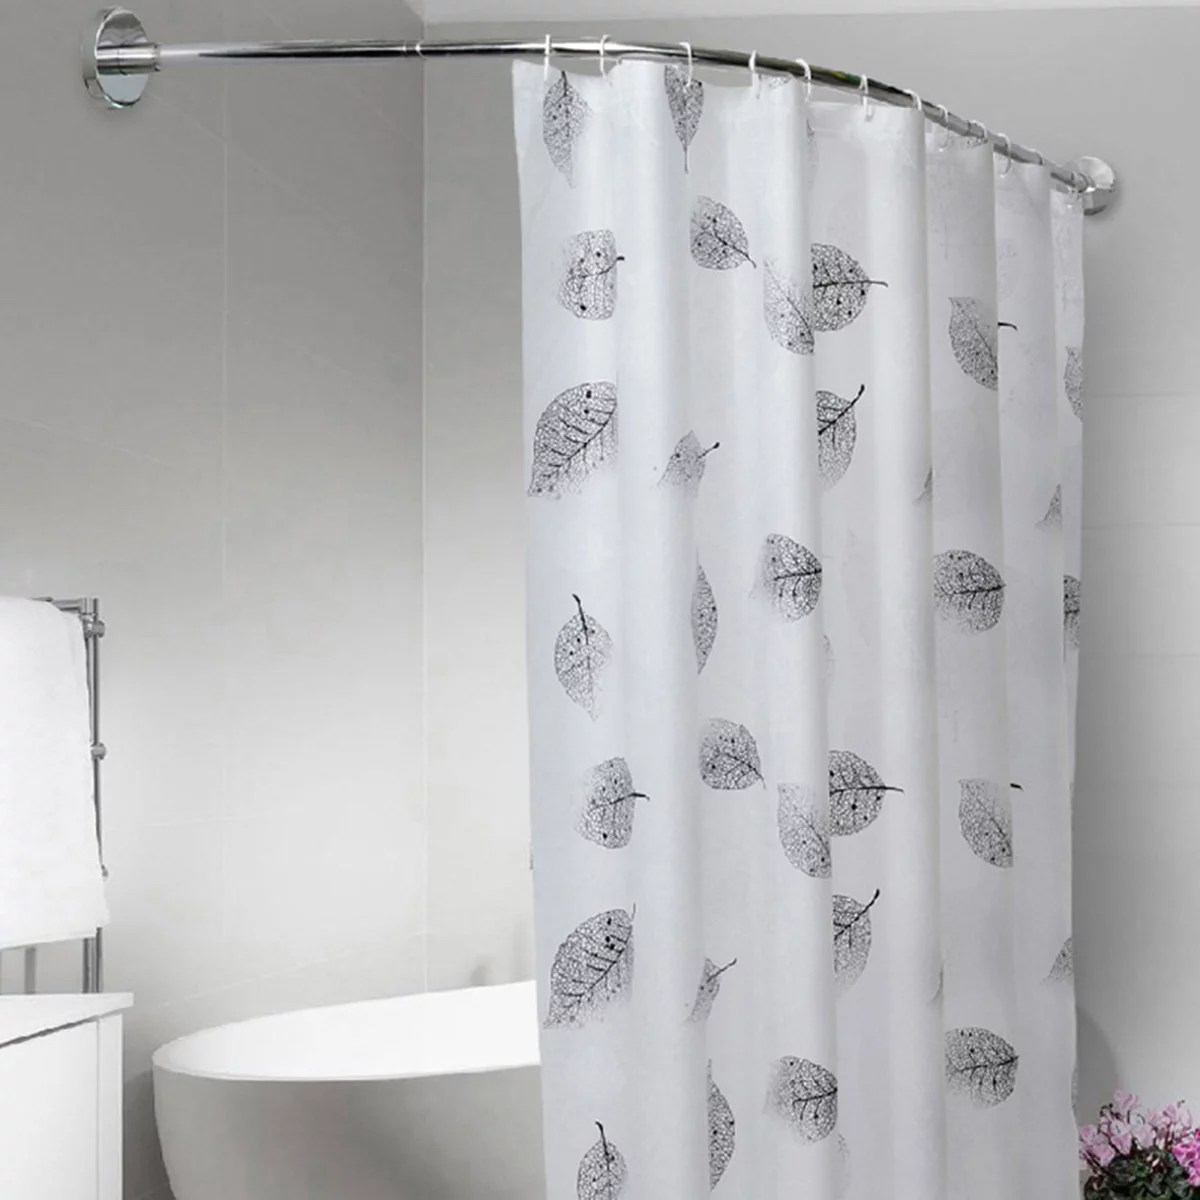 extendable corner curved shower curtain rod pole adjustable 40 64 inch no punching rail rod shower curtain and glue are not included walmart com